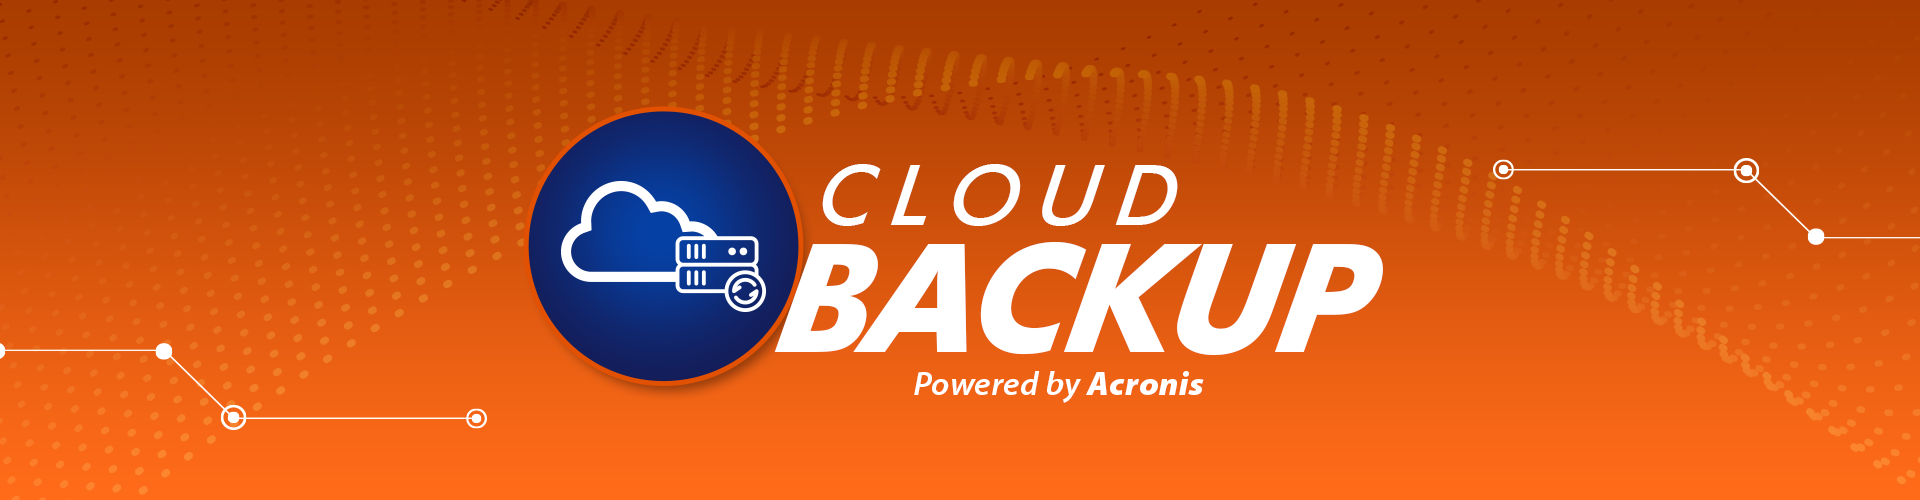 on-cloud-backup